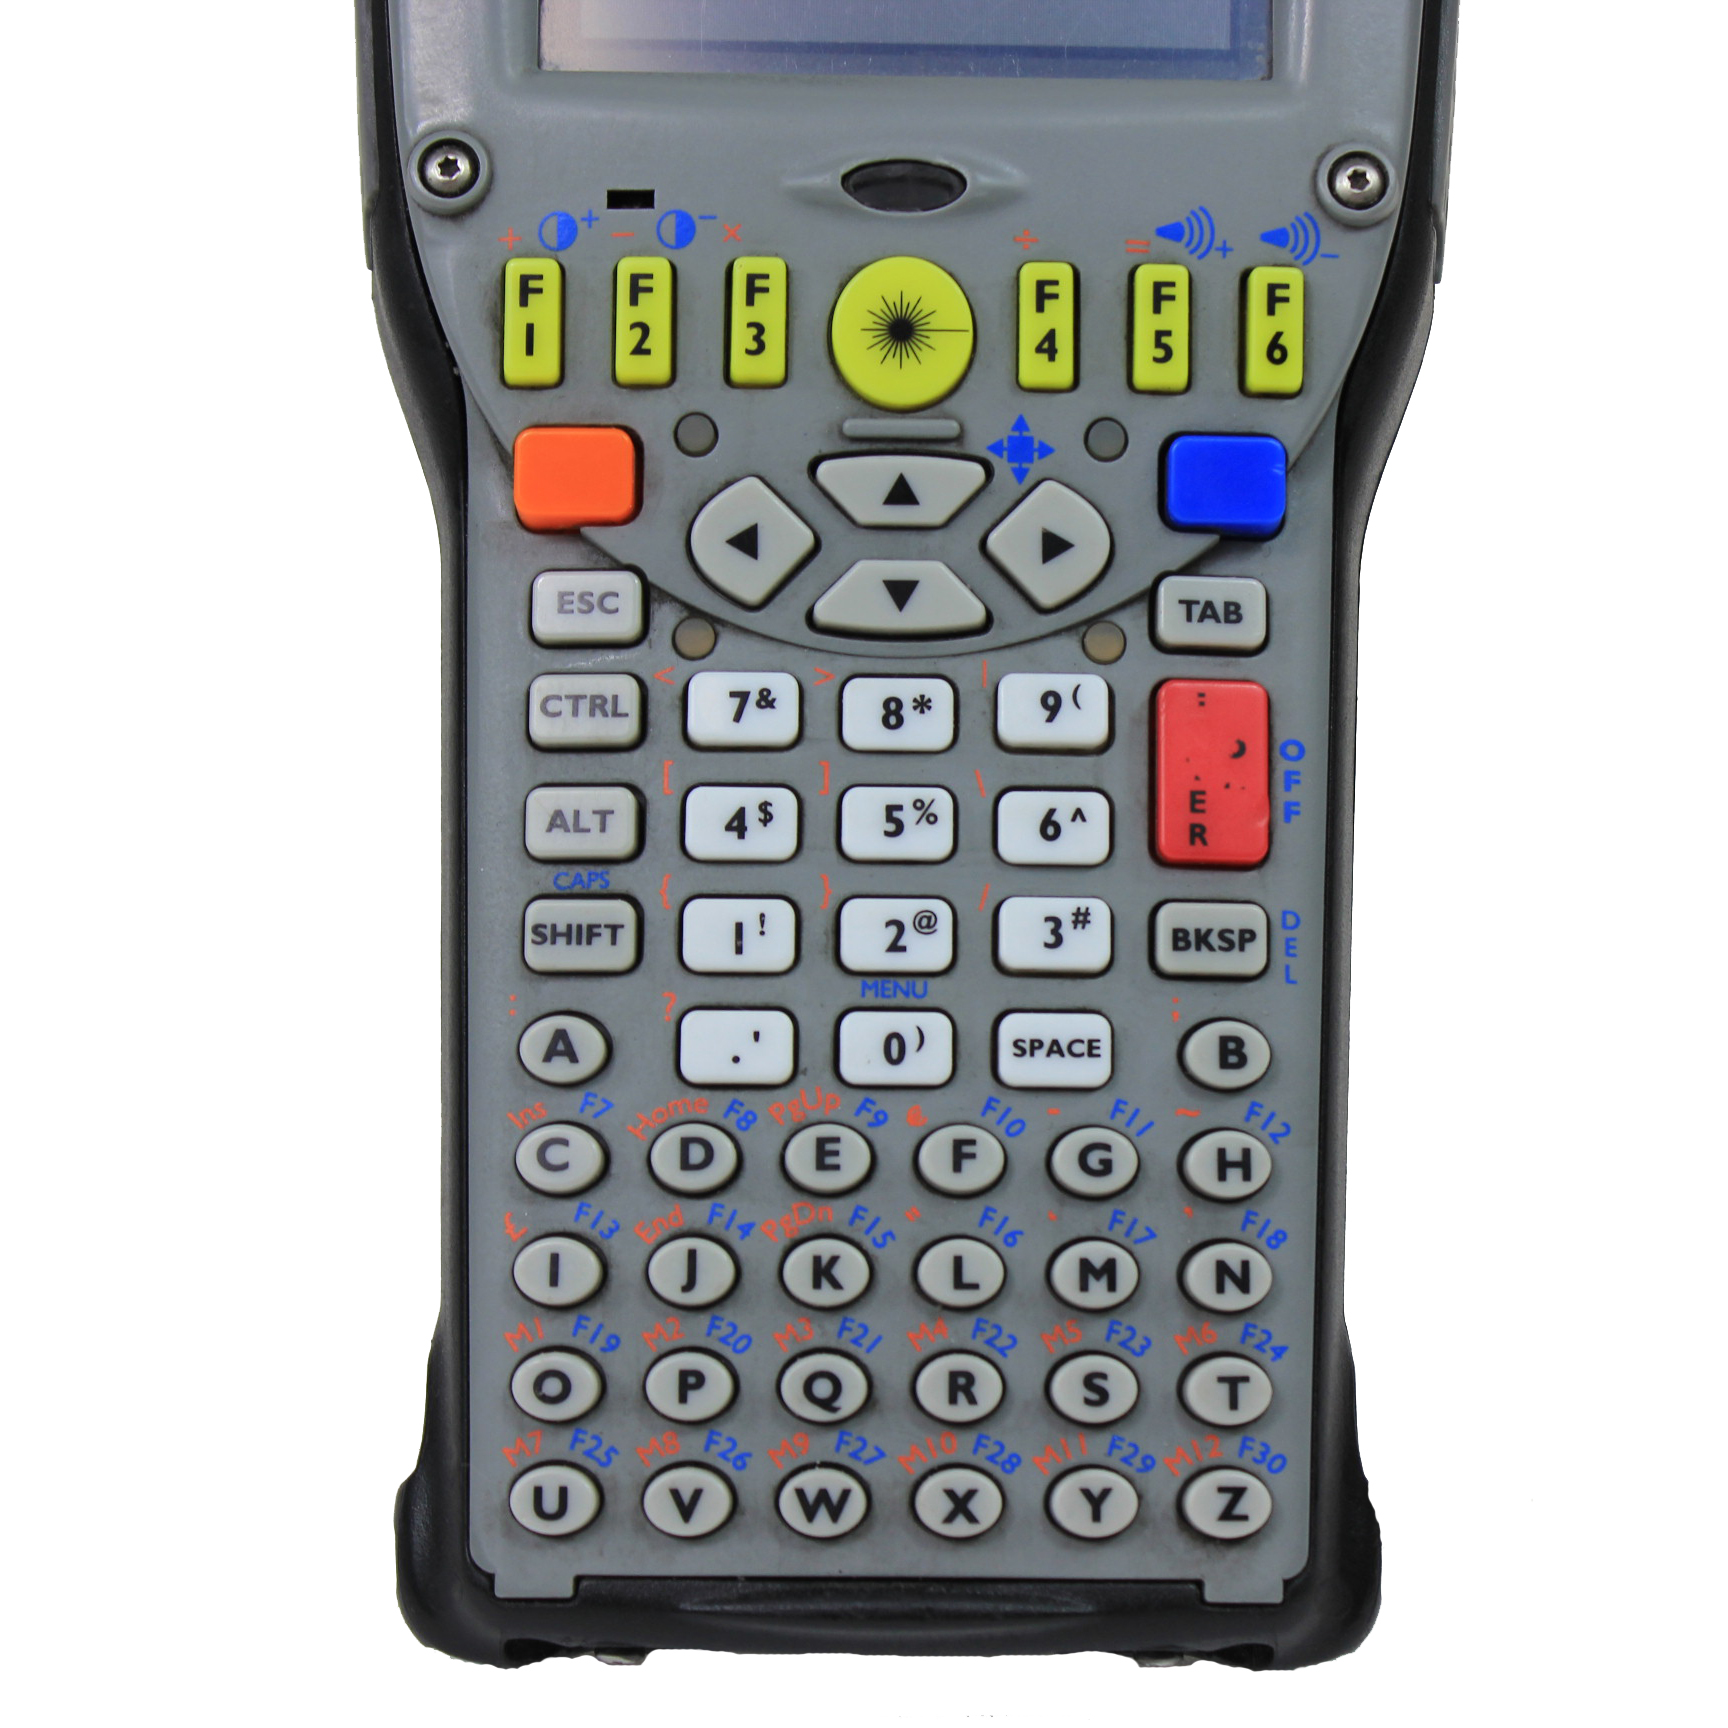 Honeywell part number search